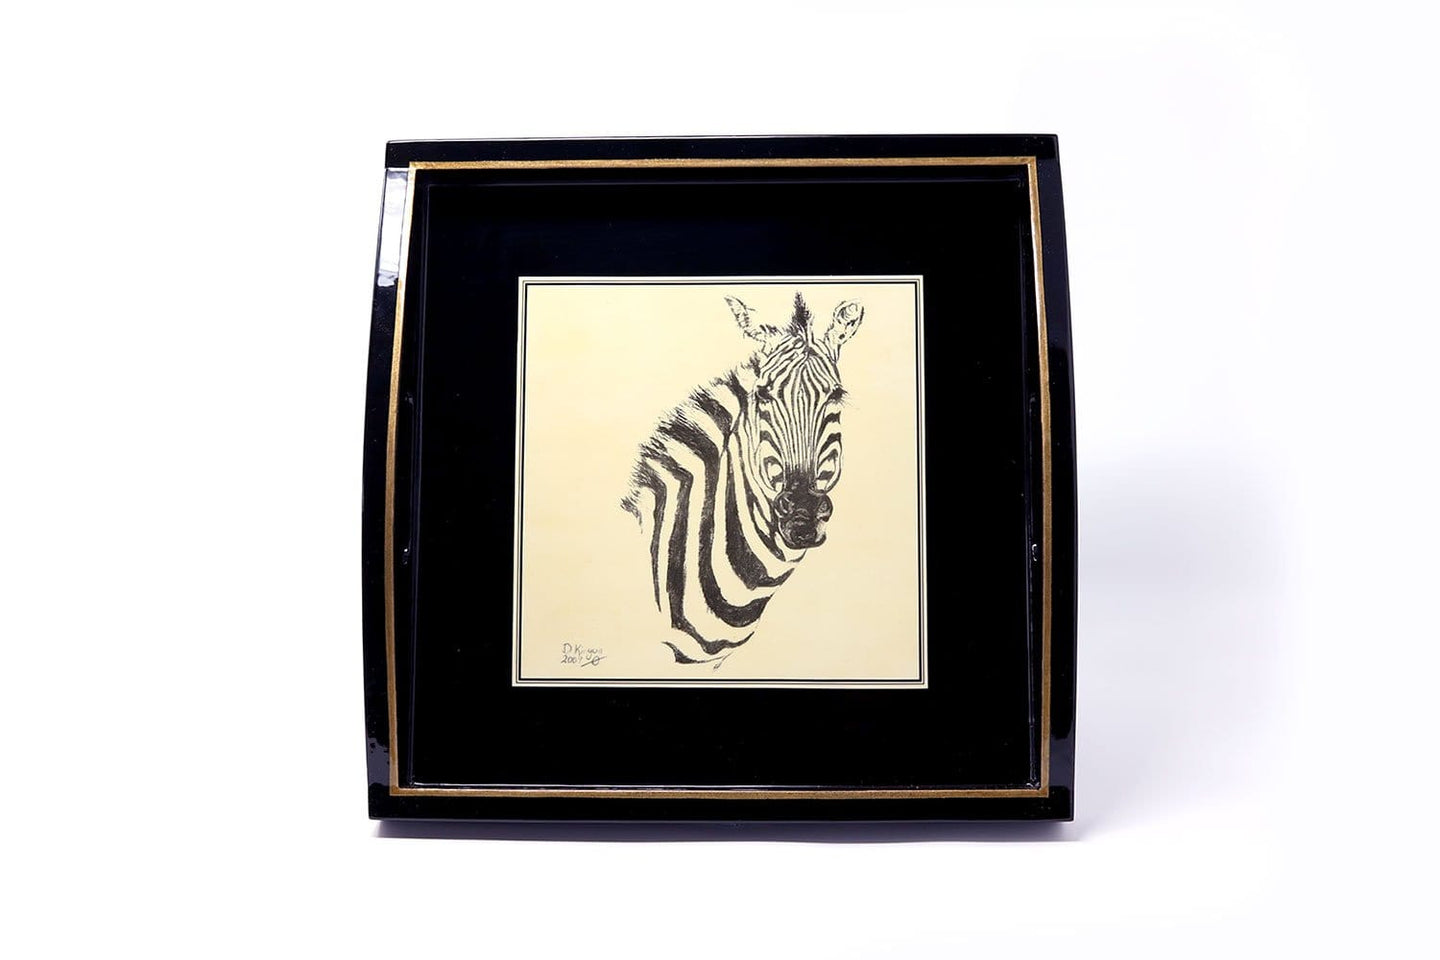 Square Tray, Zebra Head Sketch on Black